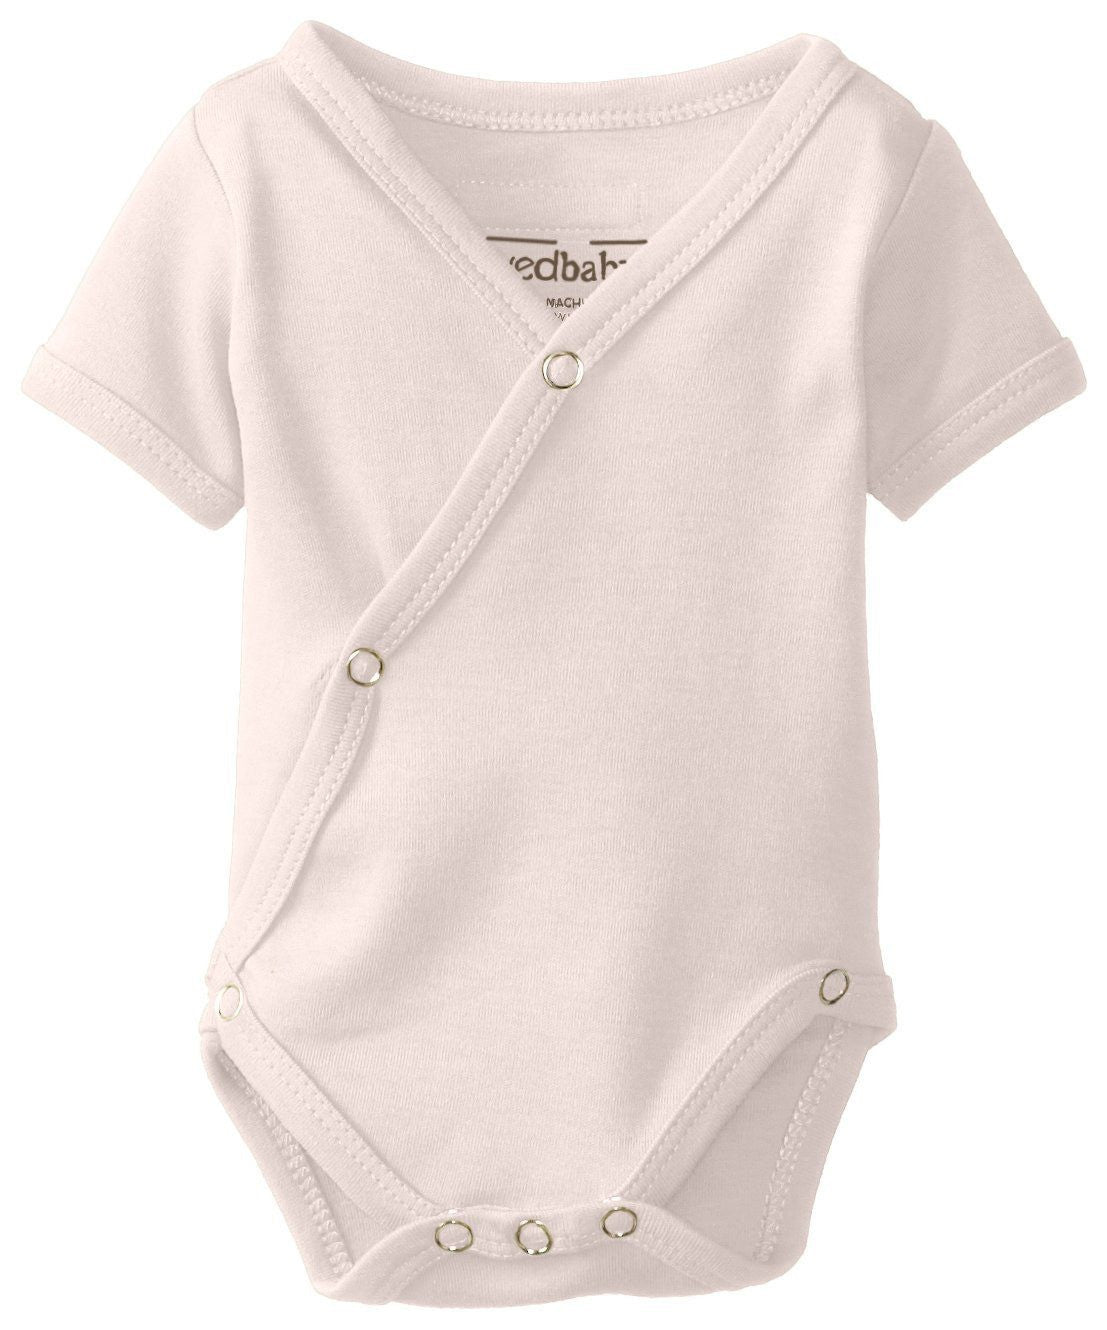 fawn&forest Organic Kimono Shortsleeve Bodysuit - fawn&forest